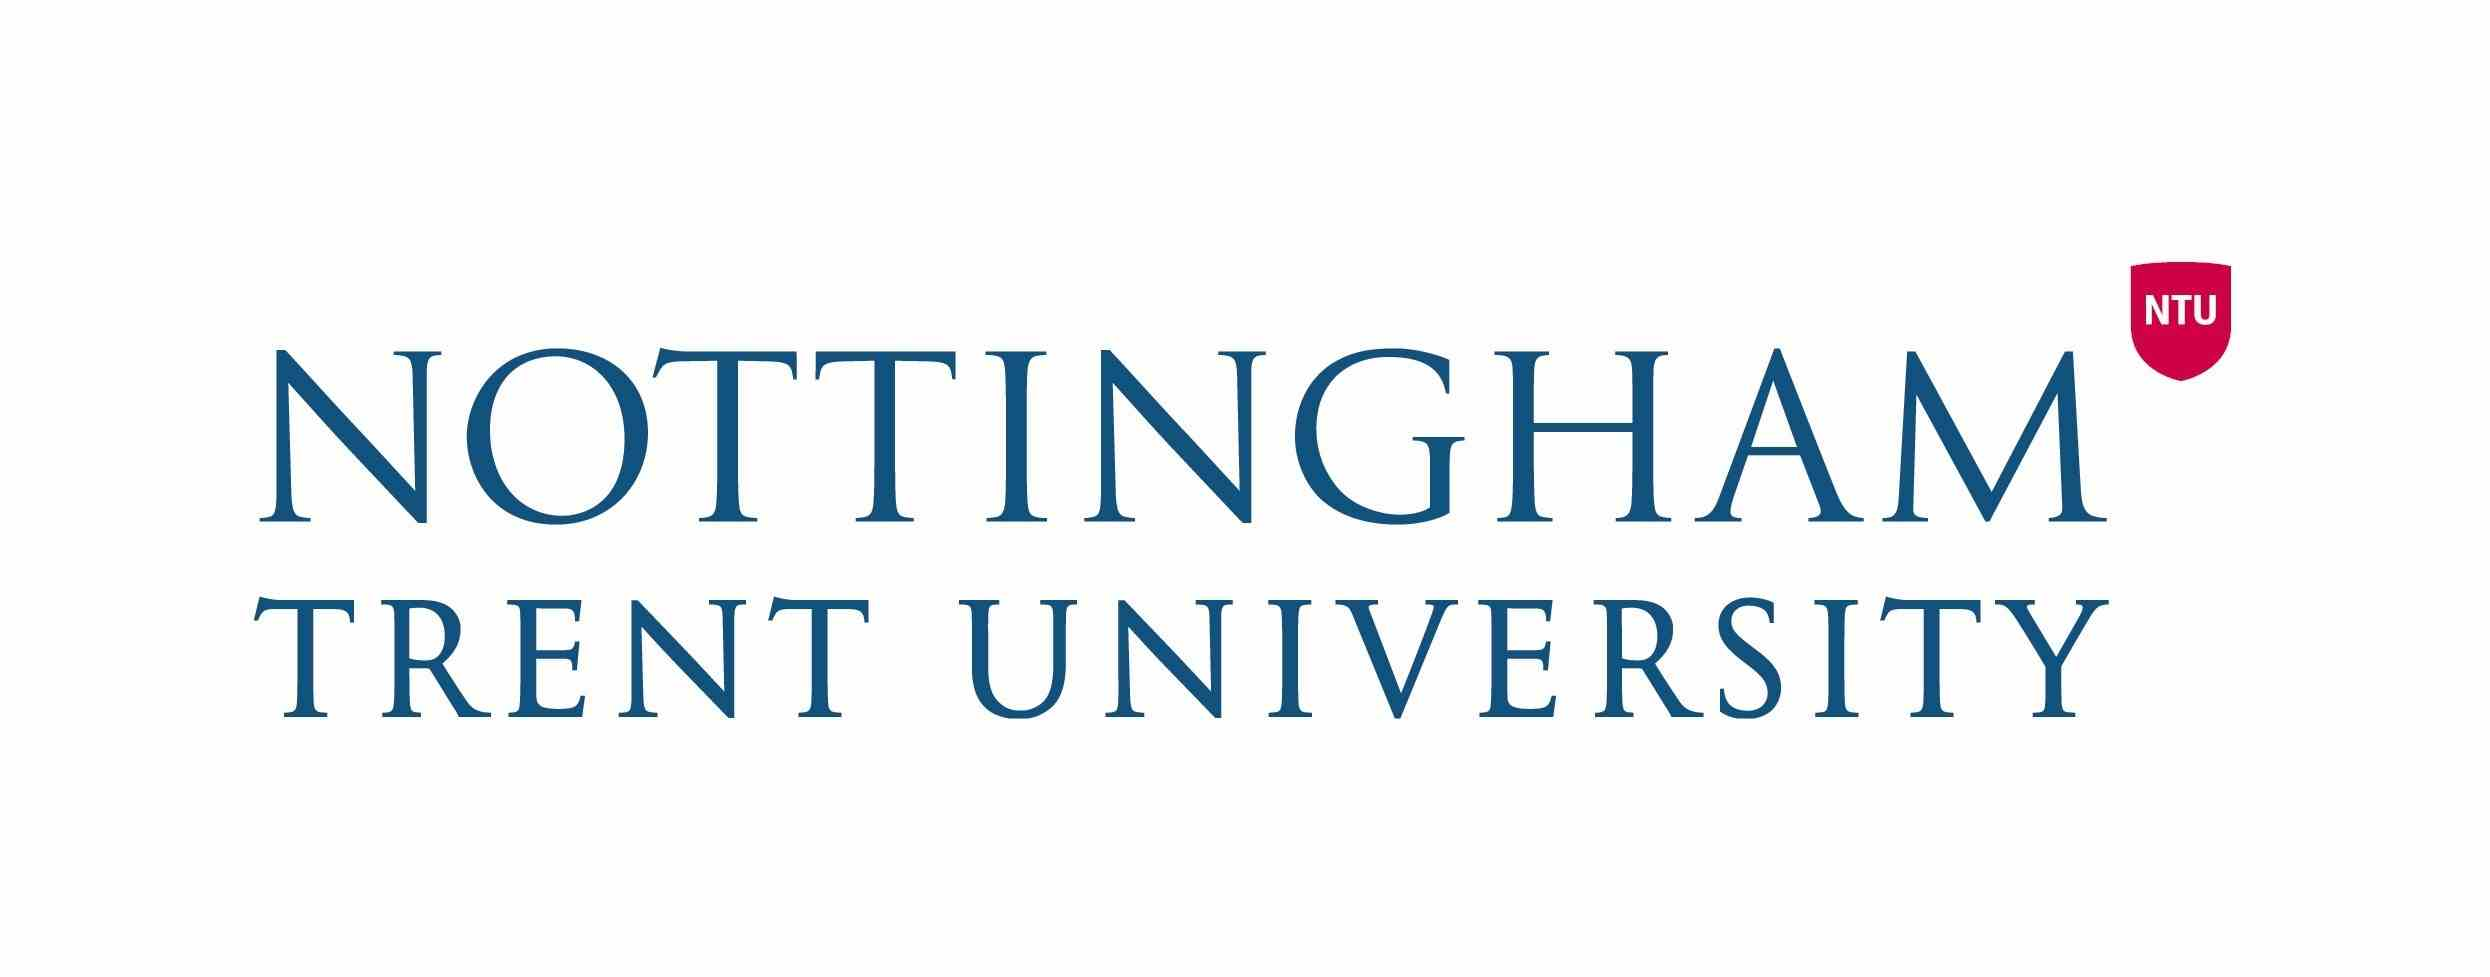 university of nottingham online application